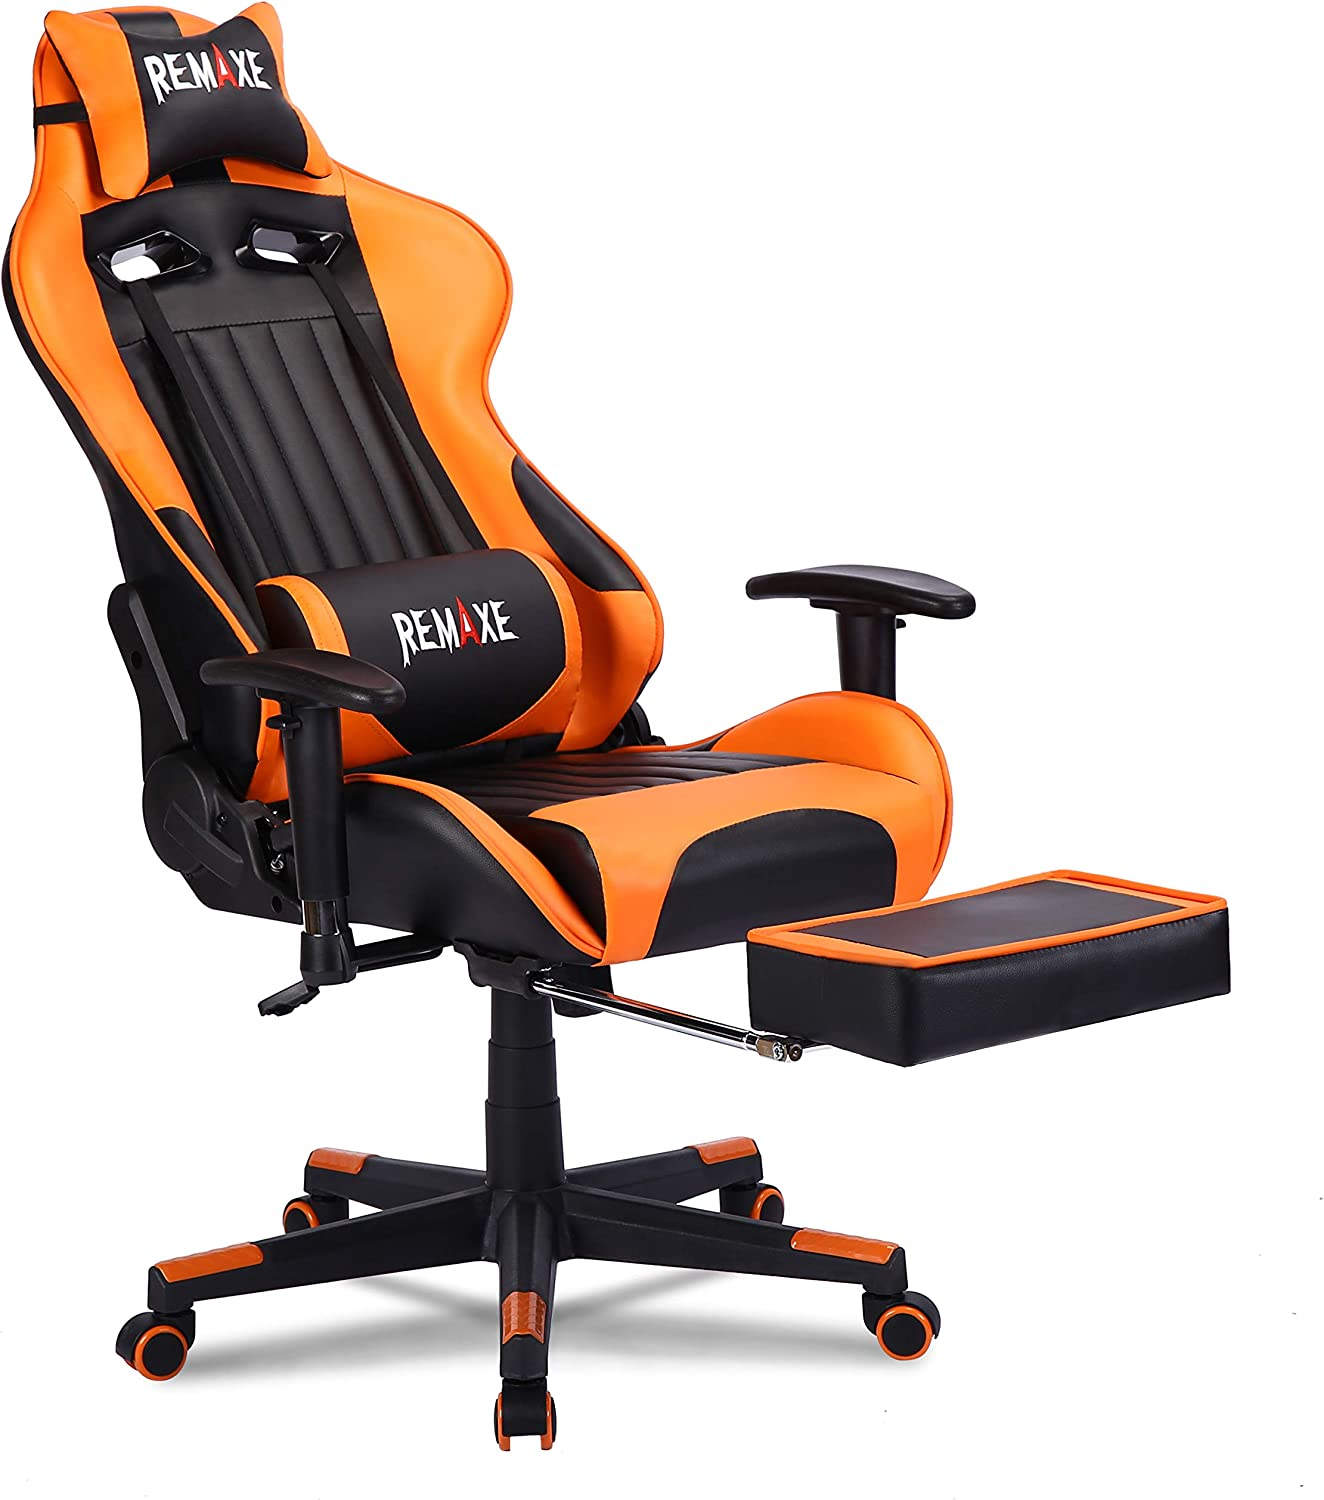 Gaming Chair with Footrest,Computer Gaming Chair High-Back Racing Chair,PU Leather Executive Office Chair with Headrest & Massage Lumbar Pillow,Orange